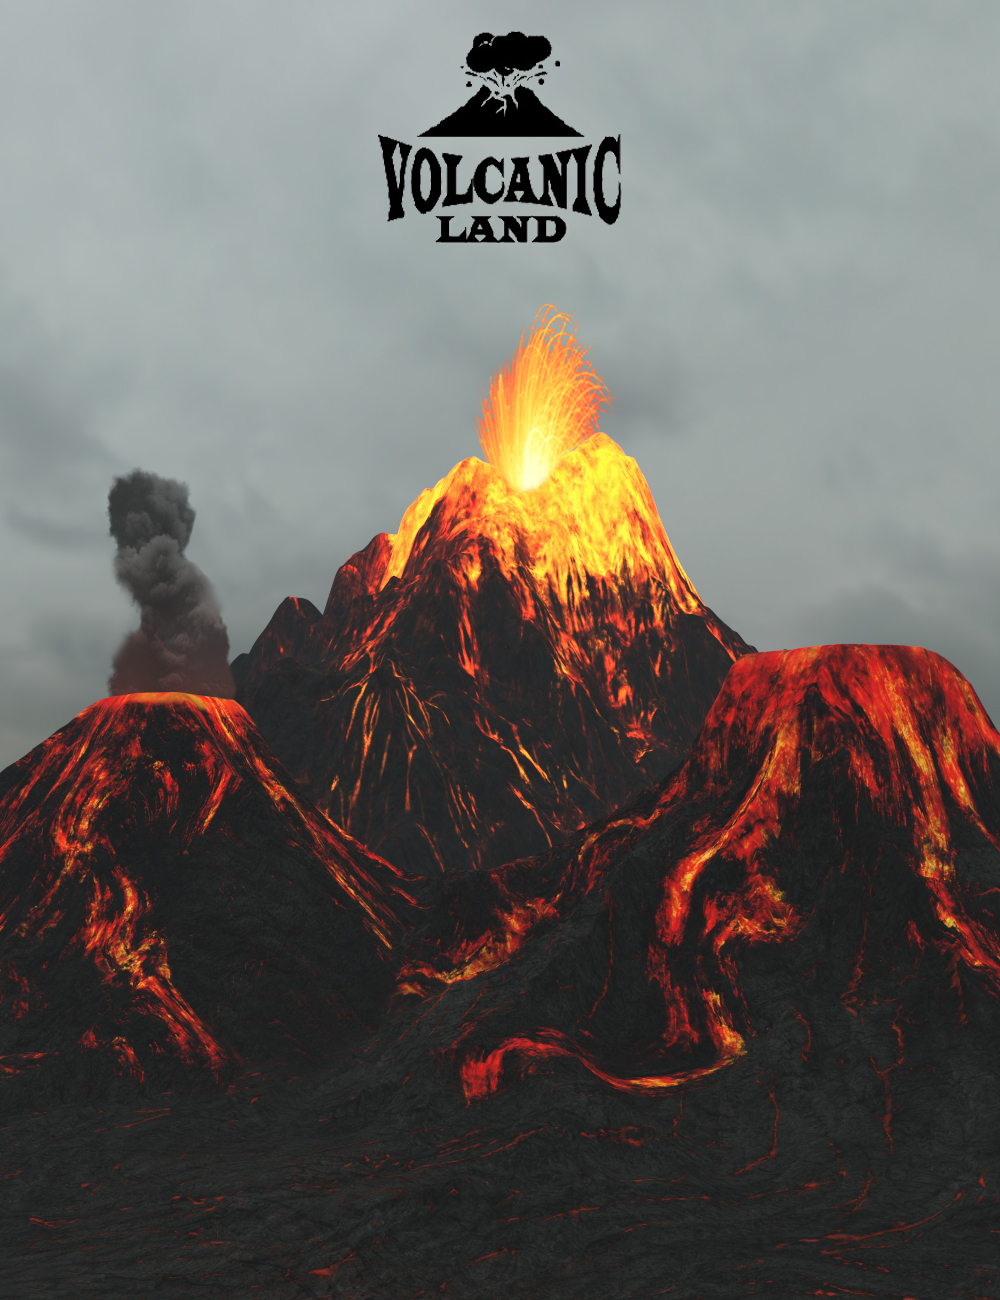 Volcanic Land by: 3dLab, 3D Models by Daz 3D